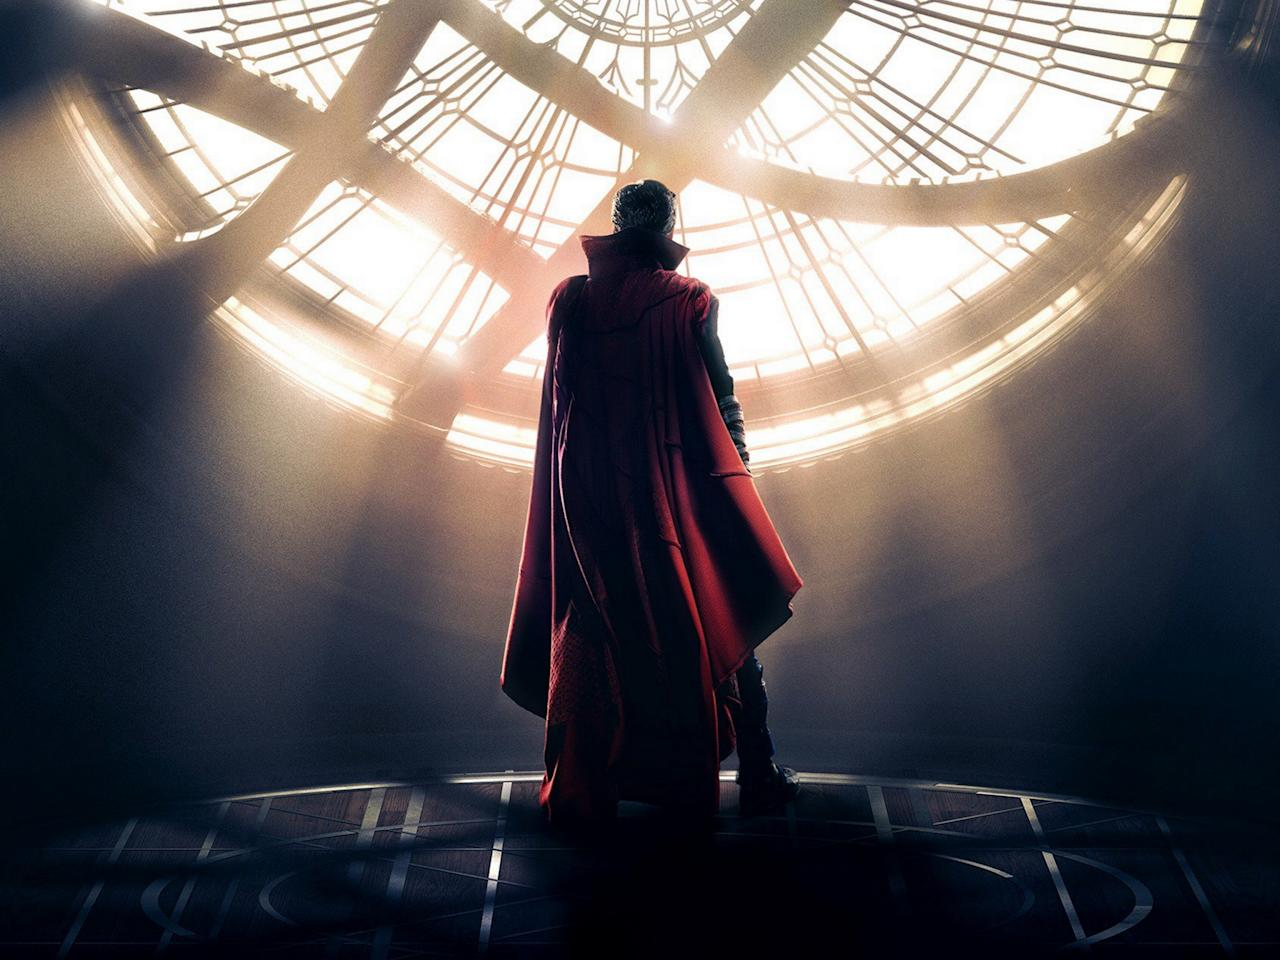 <p>Benedict Cumberbatch's Marvel debut transcended its fairly bog-standard origin tale trappings thanks to its stunning, mind-bending visuals and improbably amazing supporting cast that included Chiwitel Ejiofor, Rachel McAdams, Tilda Swinton, and Michael Stuhlbarg. </p>